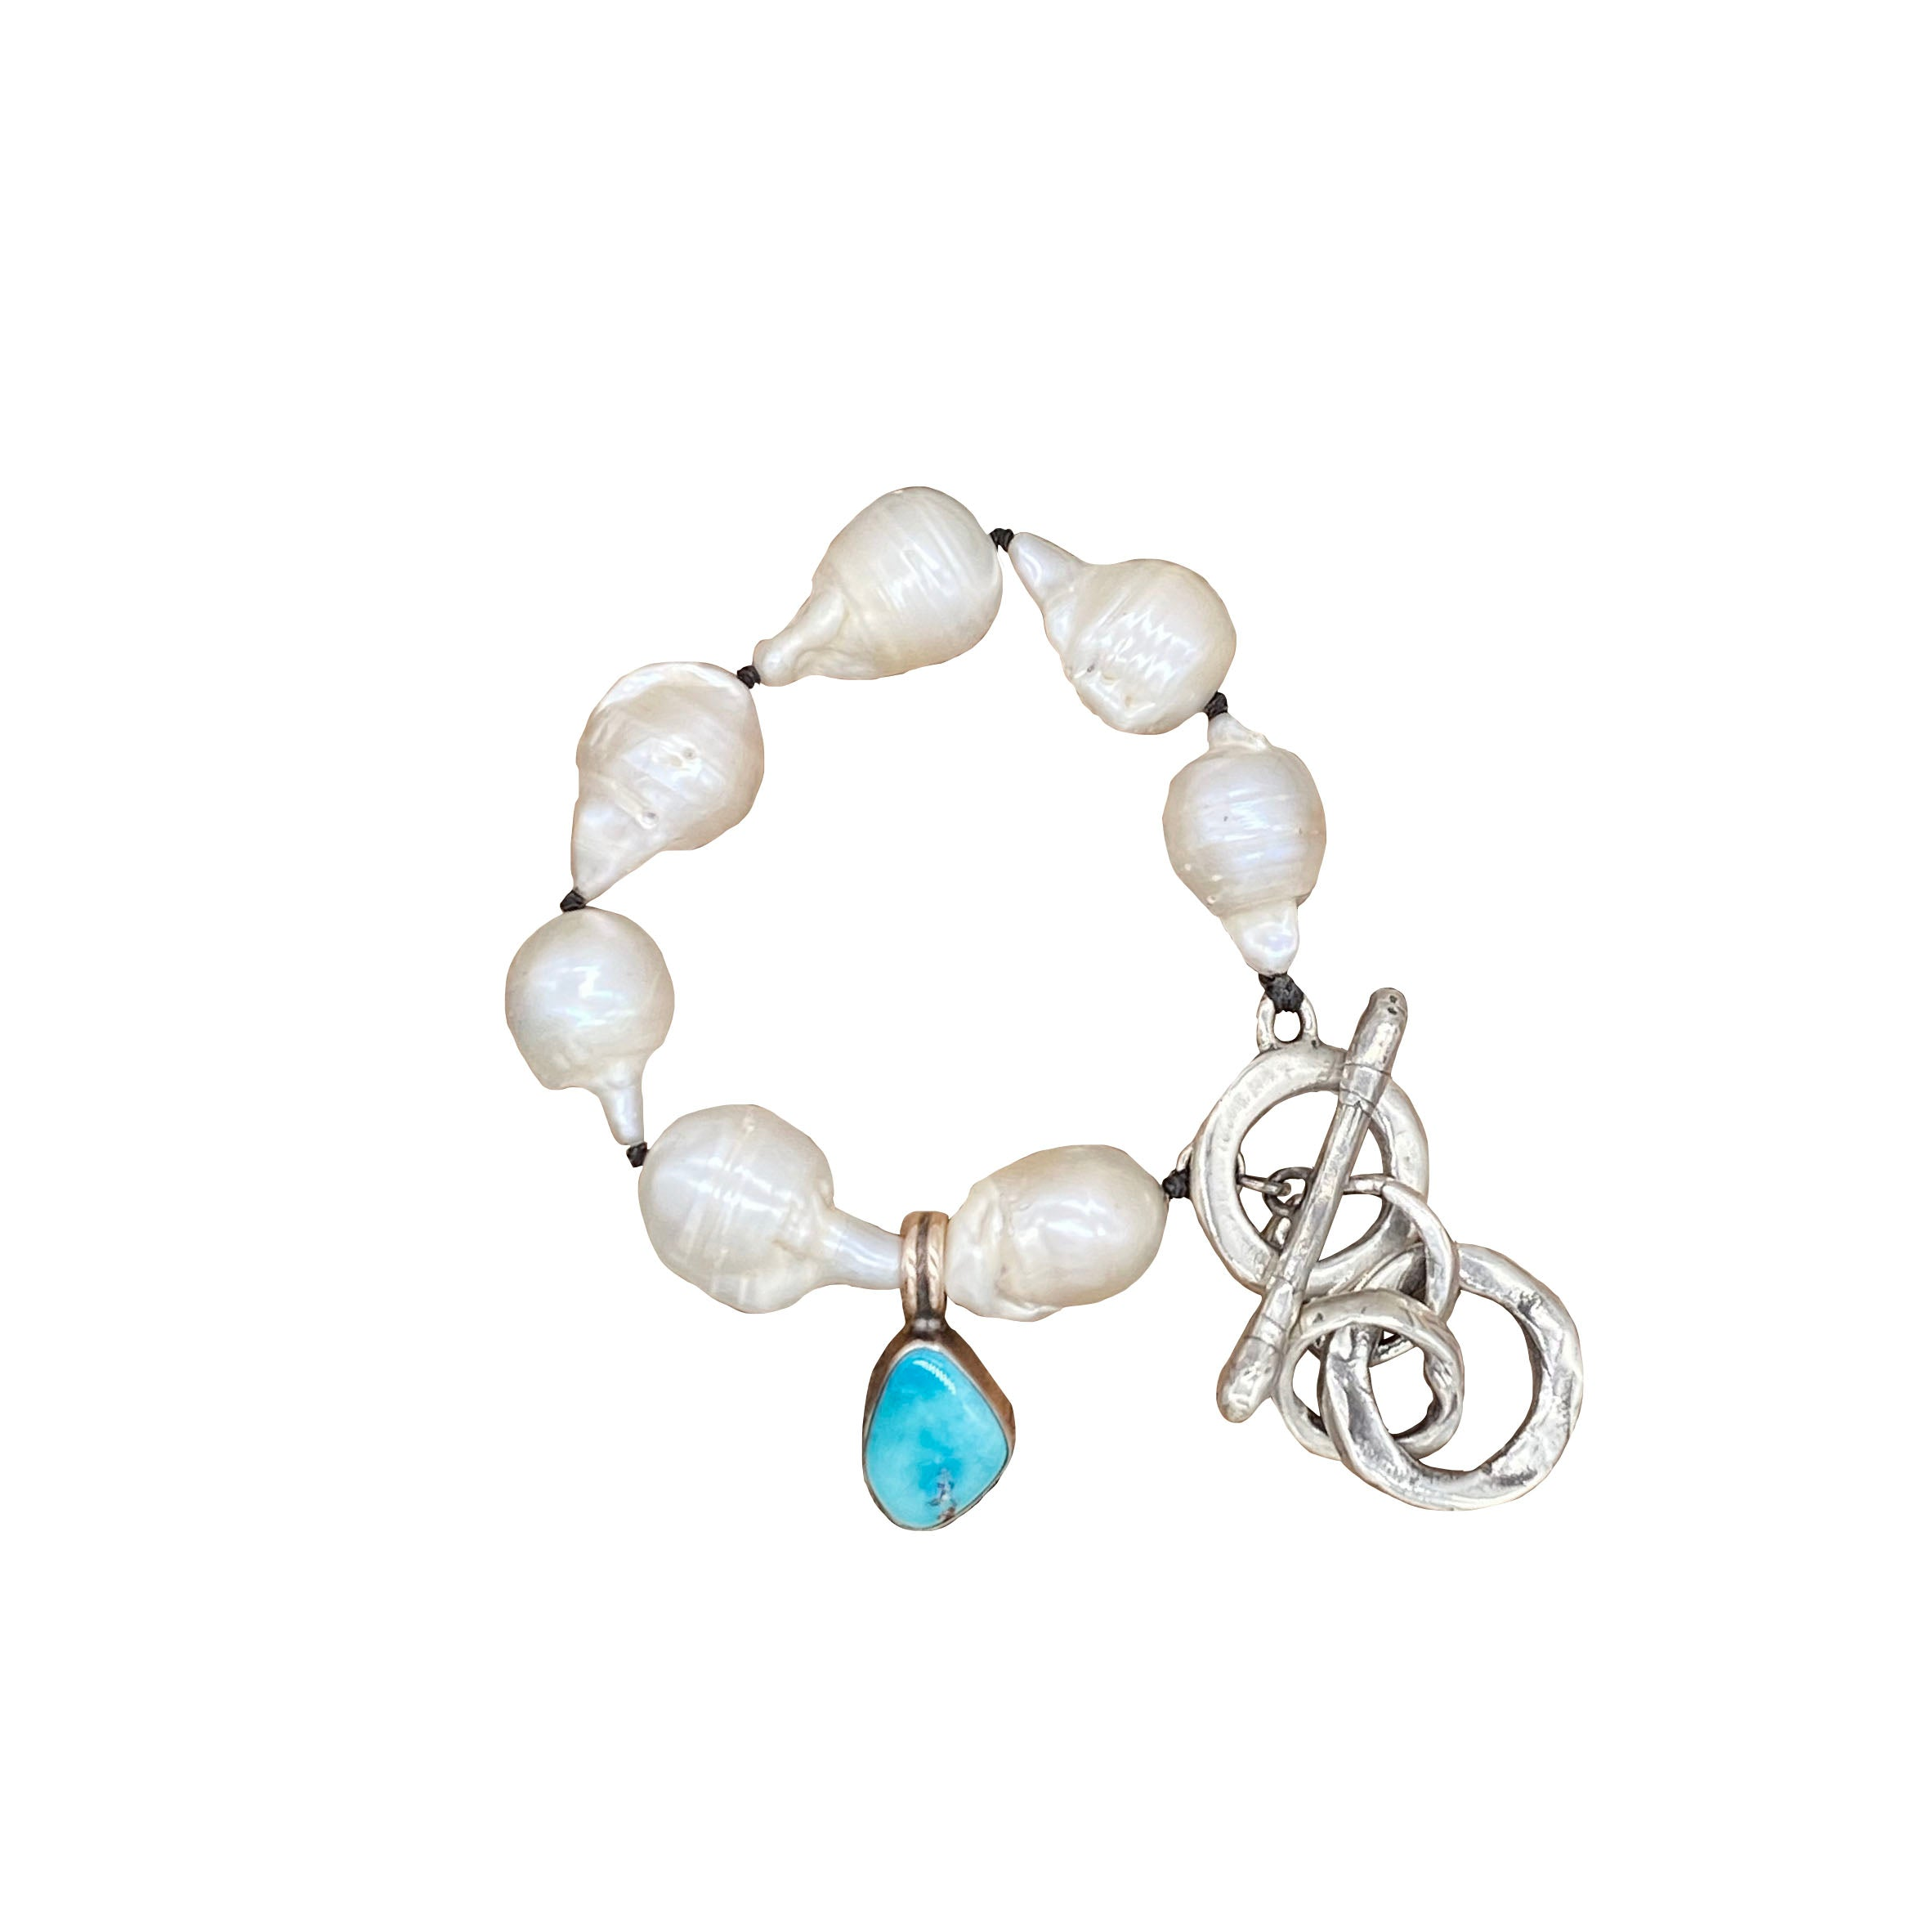 Mixed Metal Pearl and Turquoise Bracelet